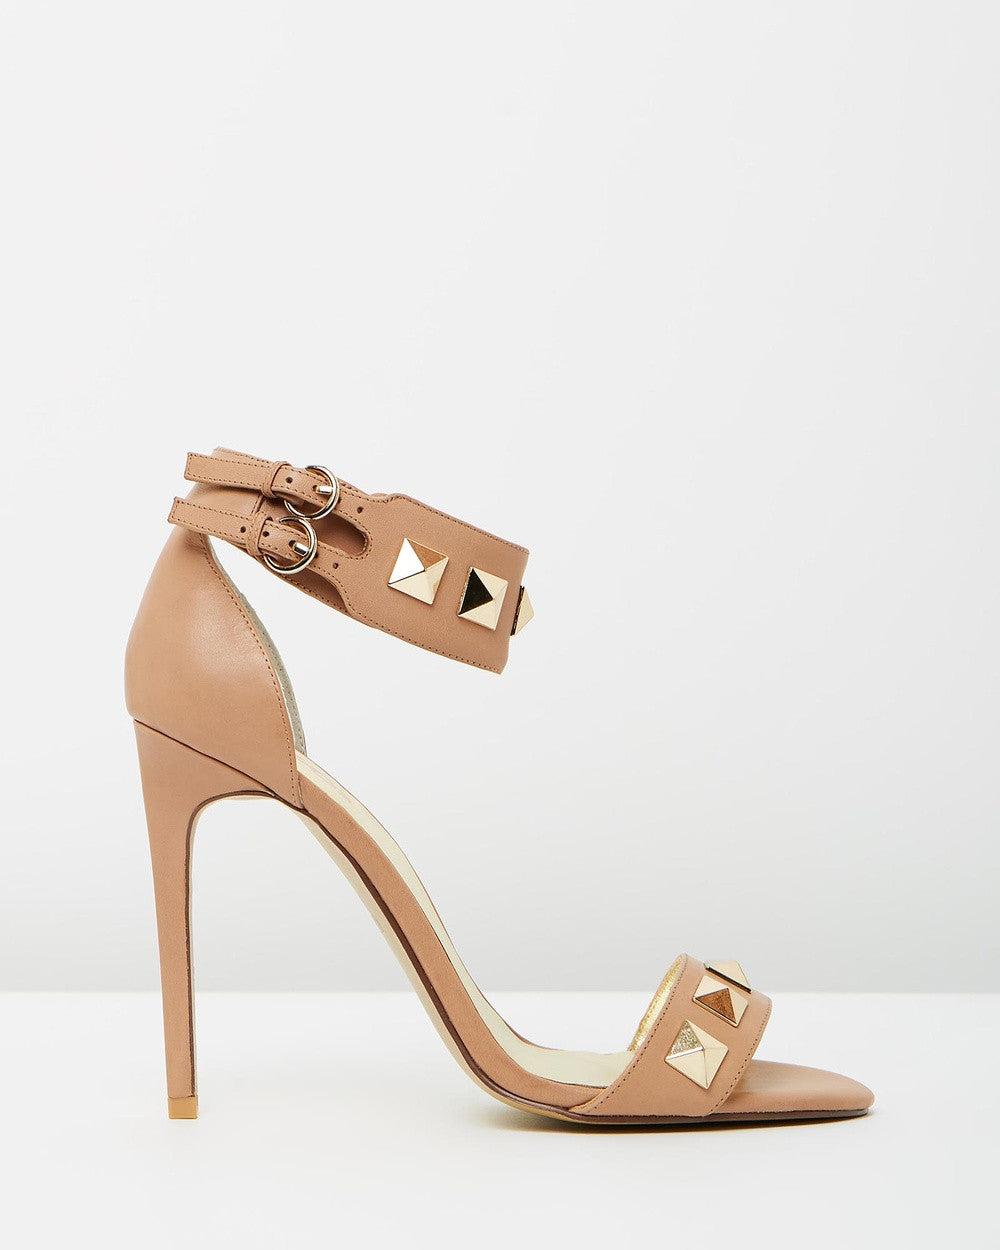 Izoa Greece Heels Taupe (SIZE 40 ONLY)